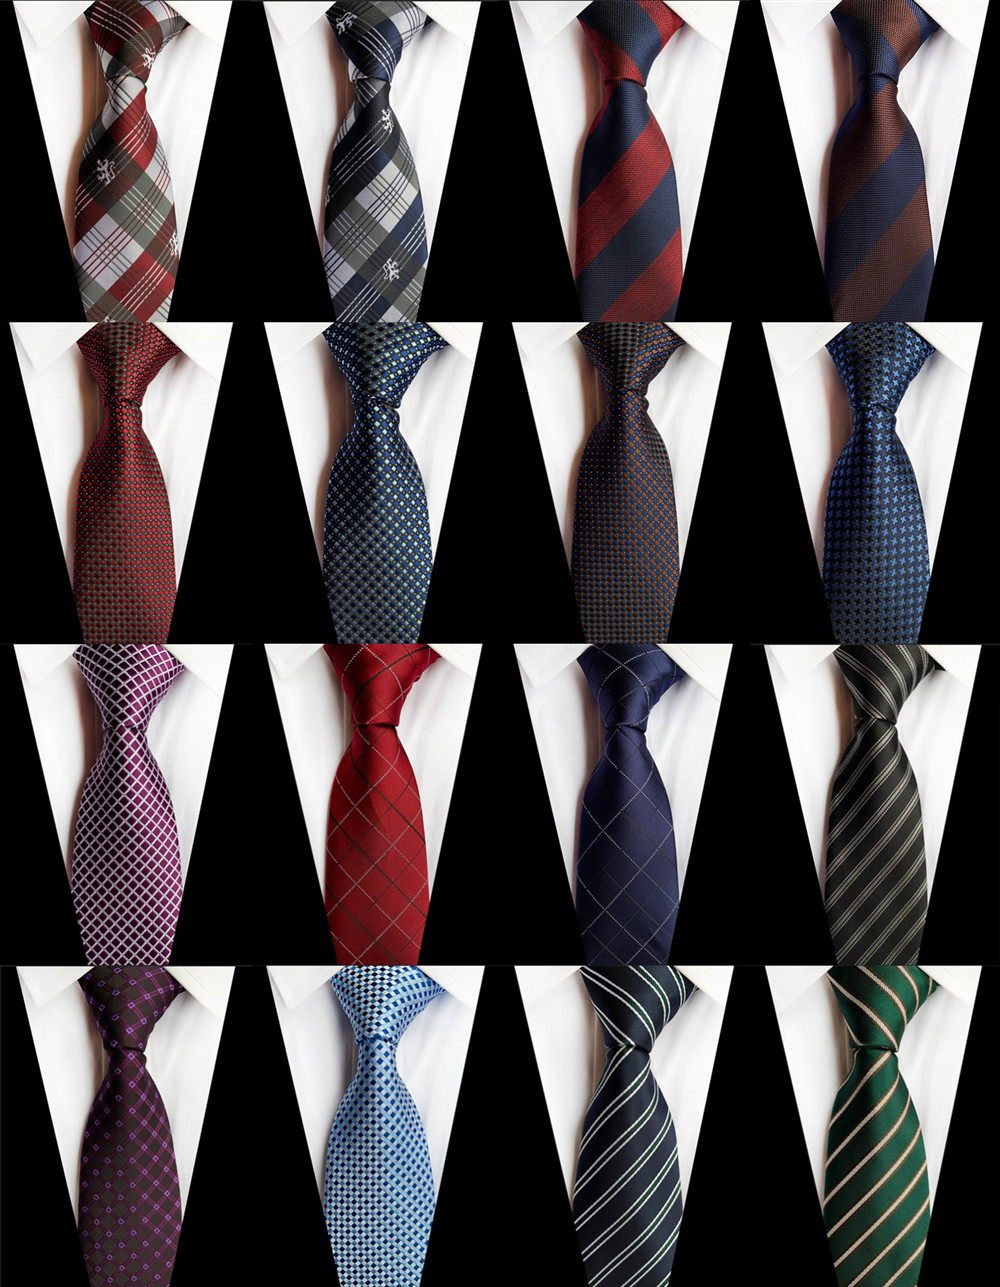 New Dark Color 8cm Ties For Man Classic Stripe Plaid Geometric Necktie Business Wedding Party Gravatas Party Jacquard Ties